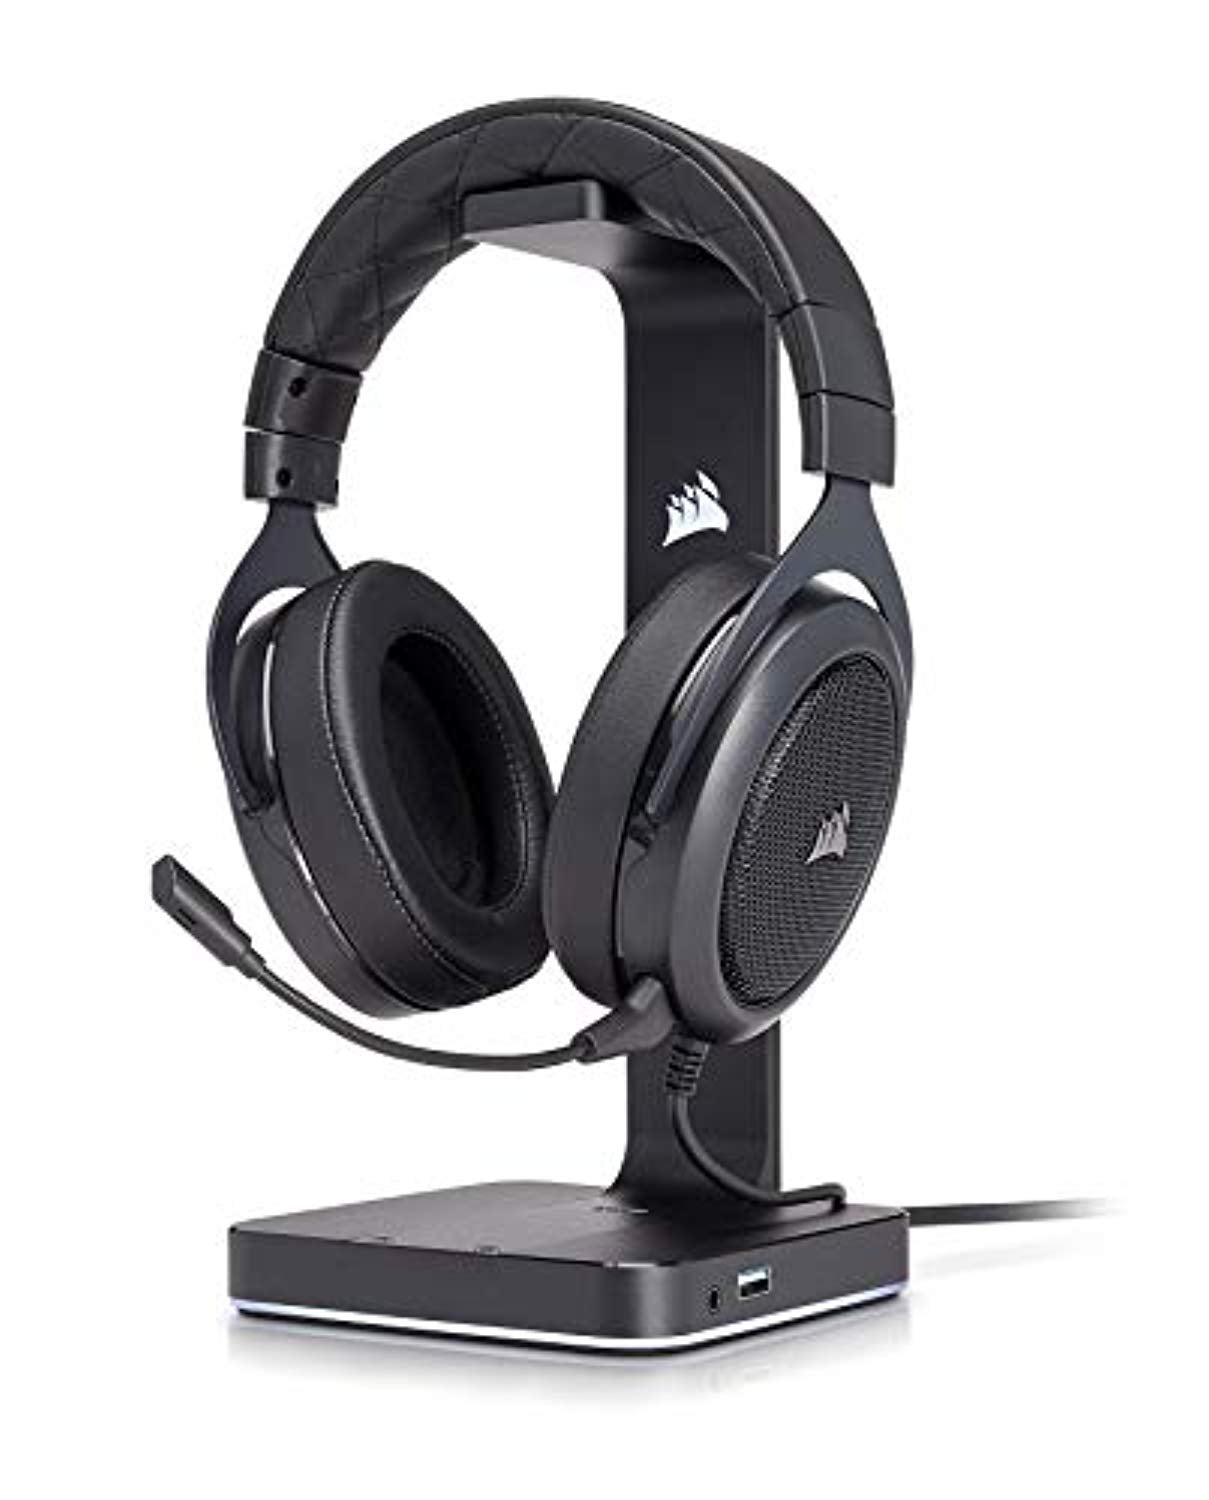 CORSAIR HS50 - Stereo Gaming Headset - Discord Certified Headphones - Works PC, Mac, Xbox One, PS4, Nintendo Switch, iOS Android – Carbon